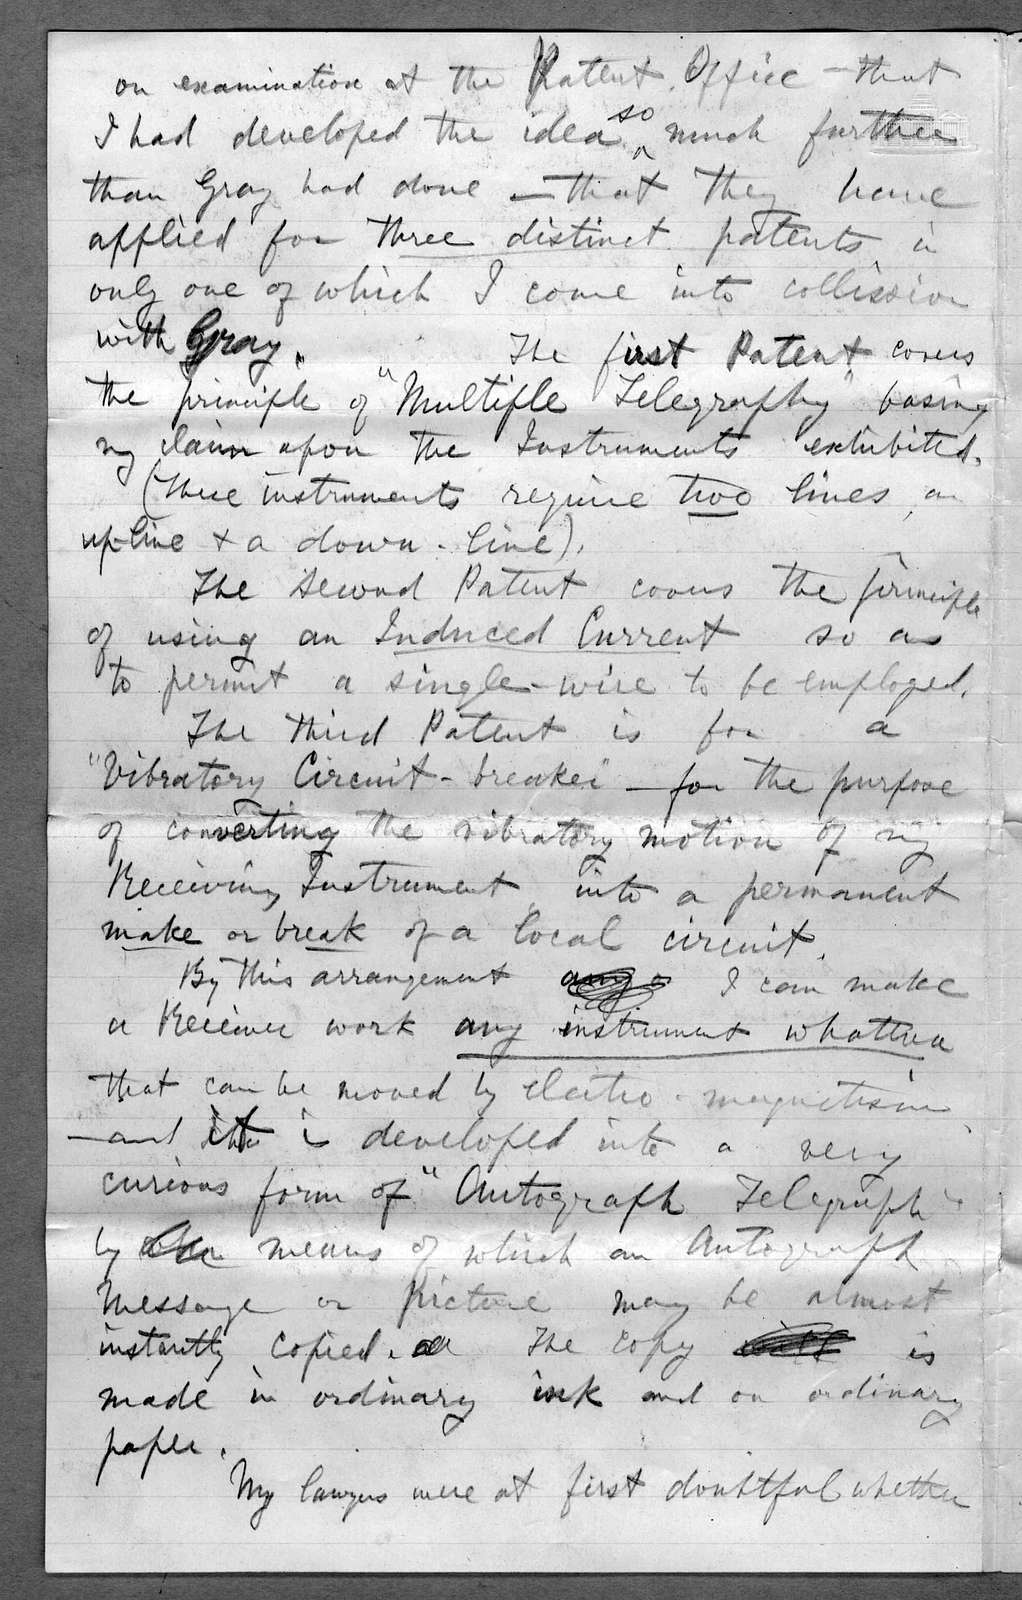 Letter from Alexander Graham Bell to Alexander Melville Bell and Eliza Symonds Bell, March 5, 1875